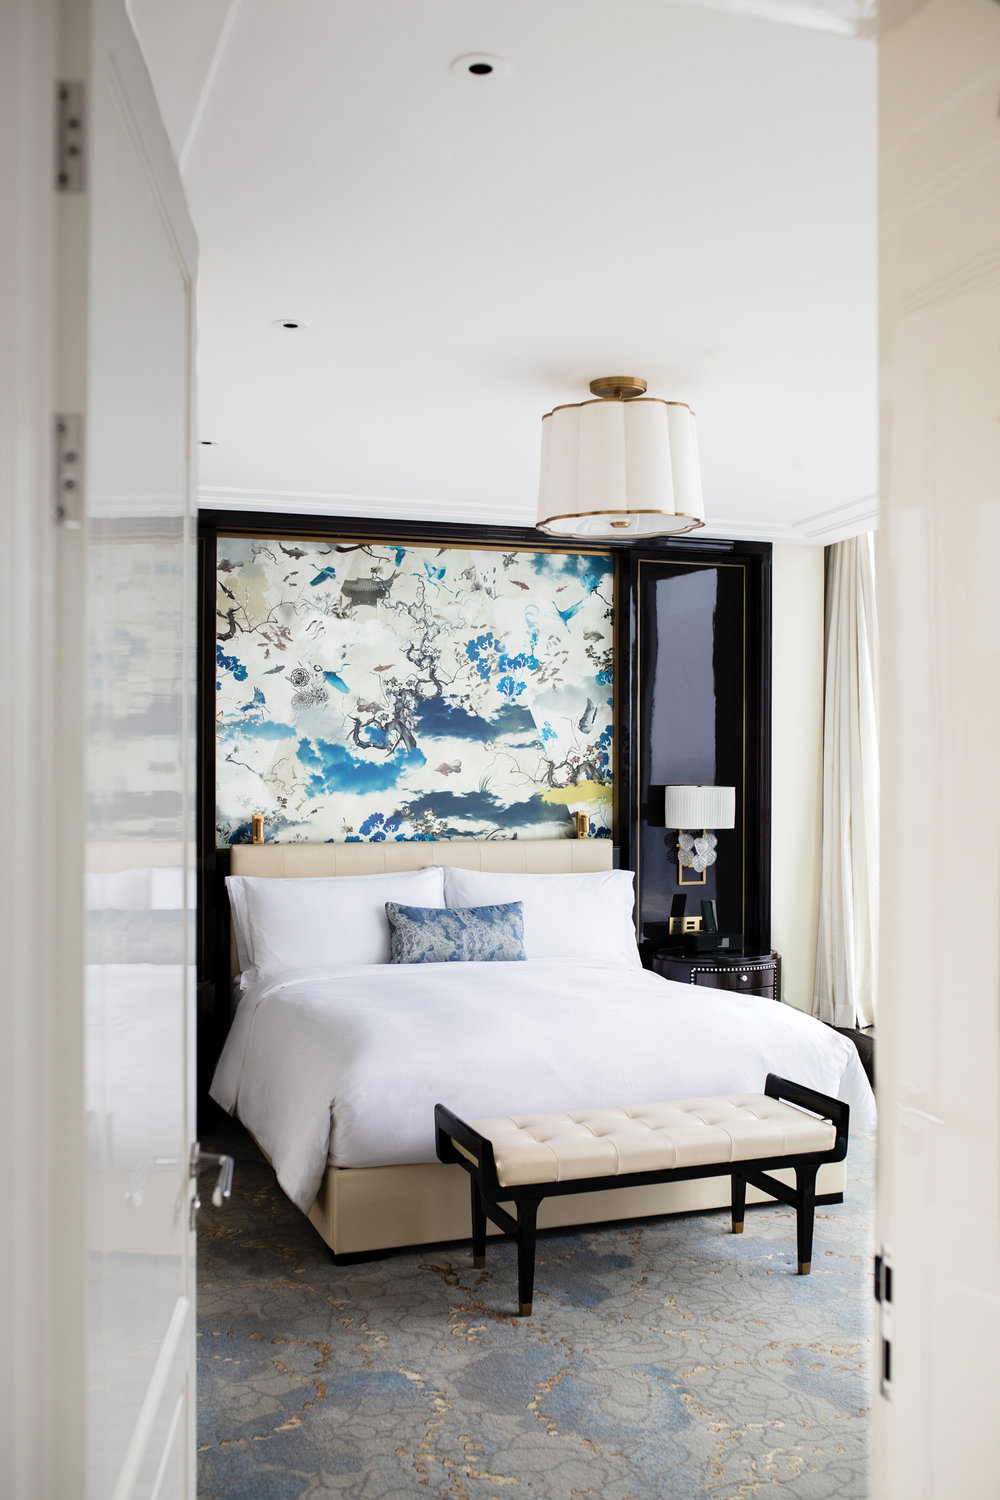 Understated elegance is key at the guest rooms of Waldorf Astoria Chengdu